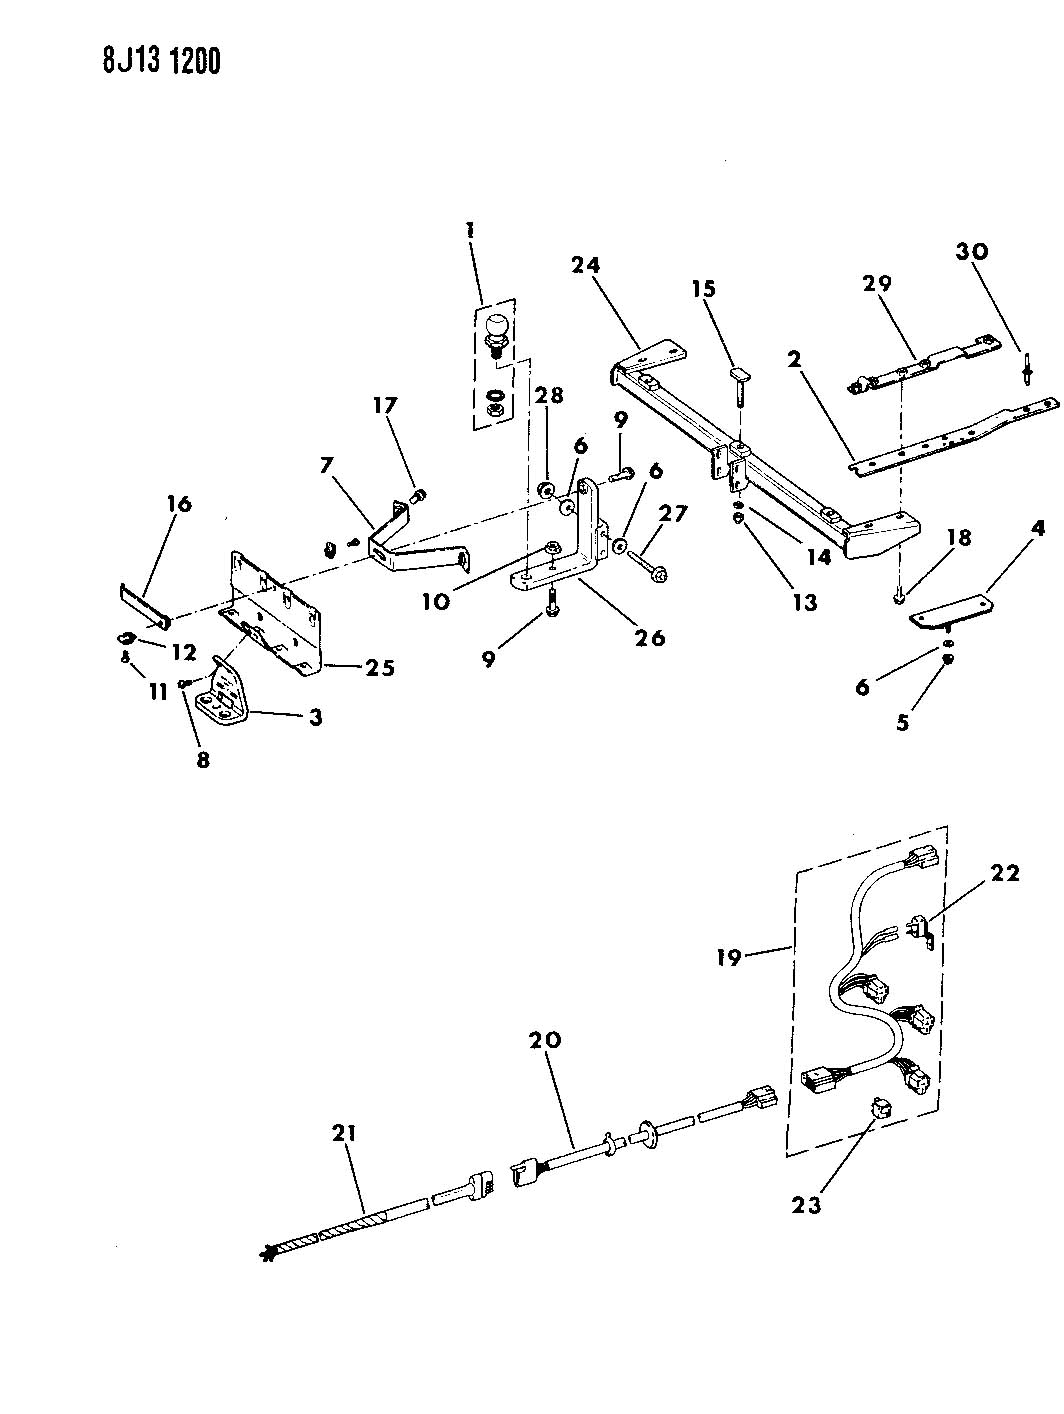 Diagram HITCH--TRAILER LIGHT DUTY CHEROKEE, WAGONEER for your 2012 Dodge Dart